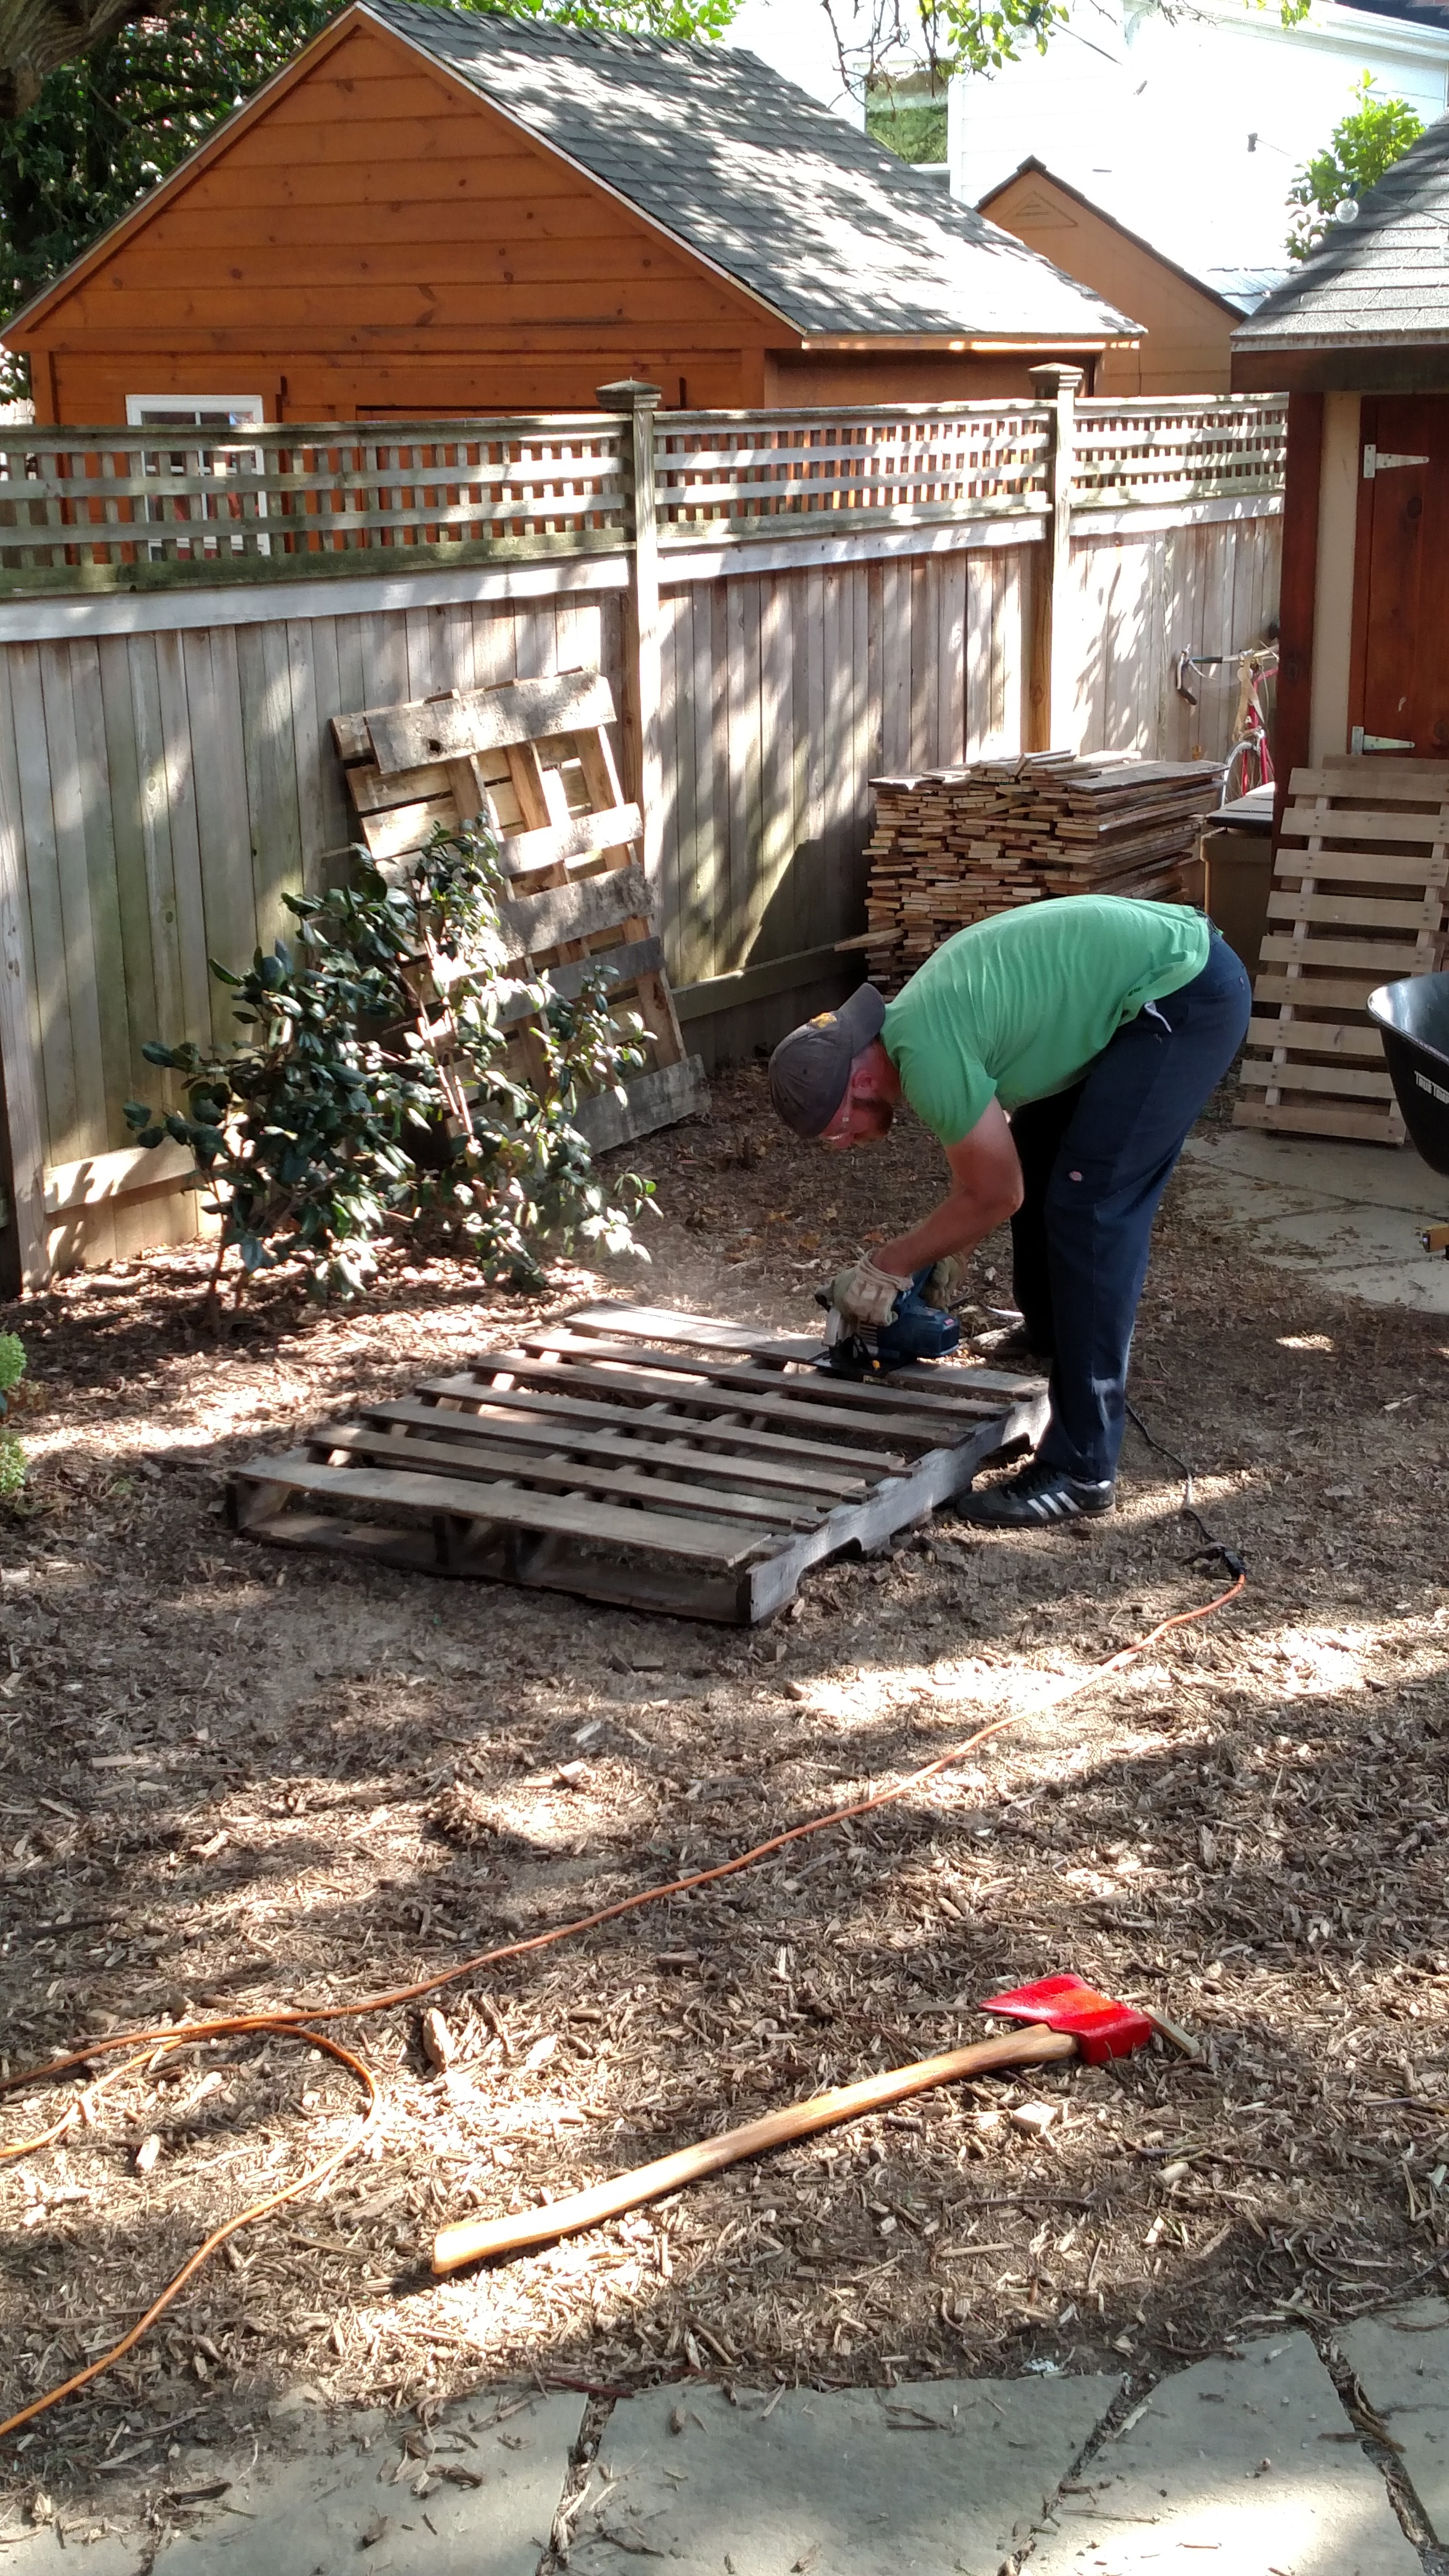 Disassembling pallet wood, by any means necessary